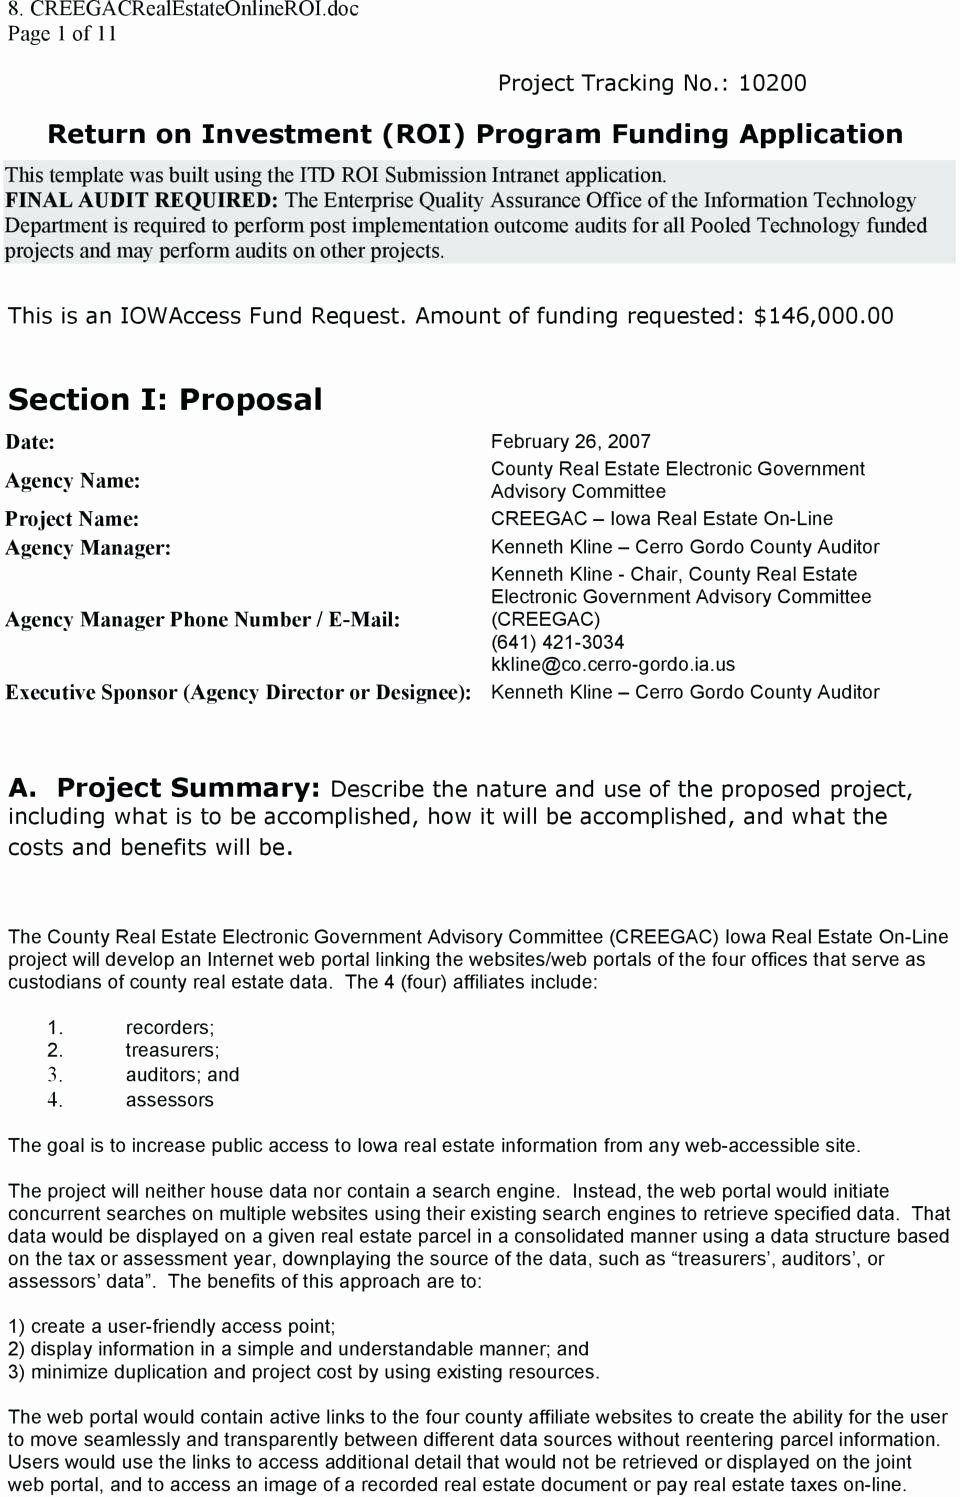 Real Estate Investment Proposal Template In 2020 Proposal Templates